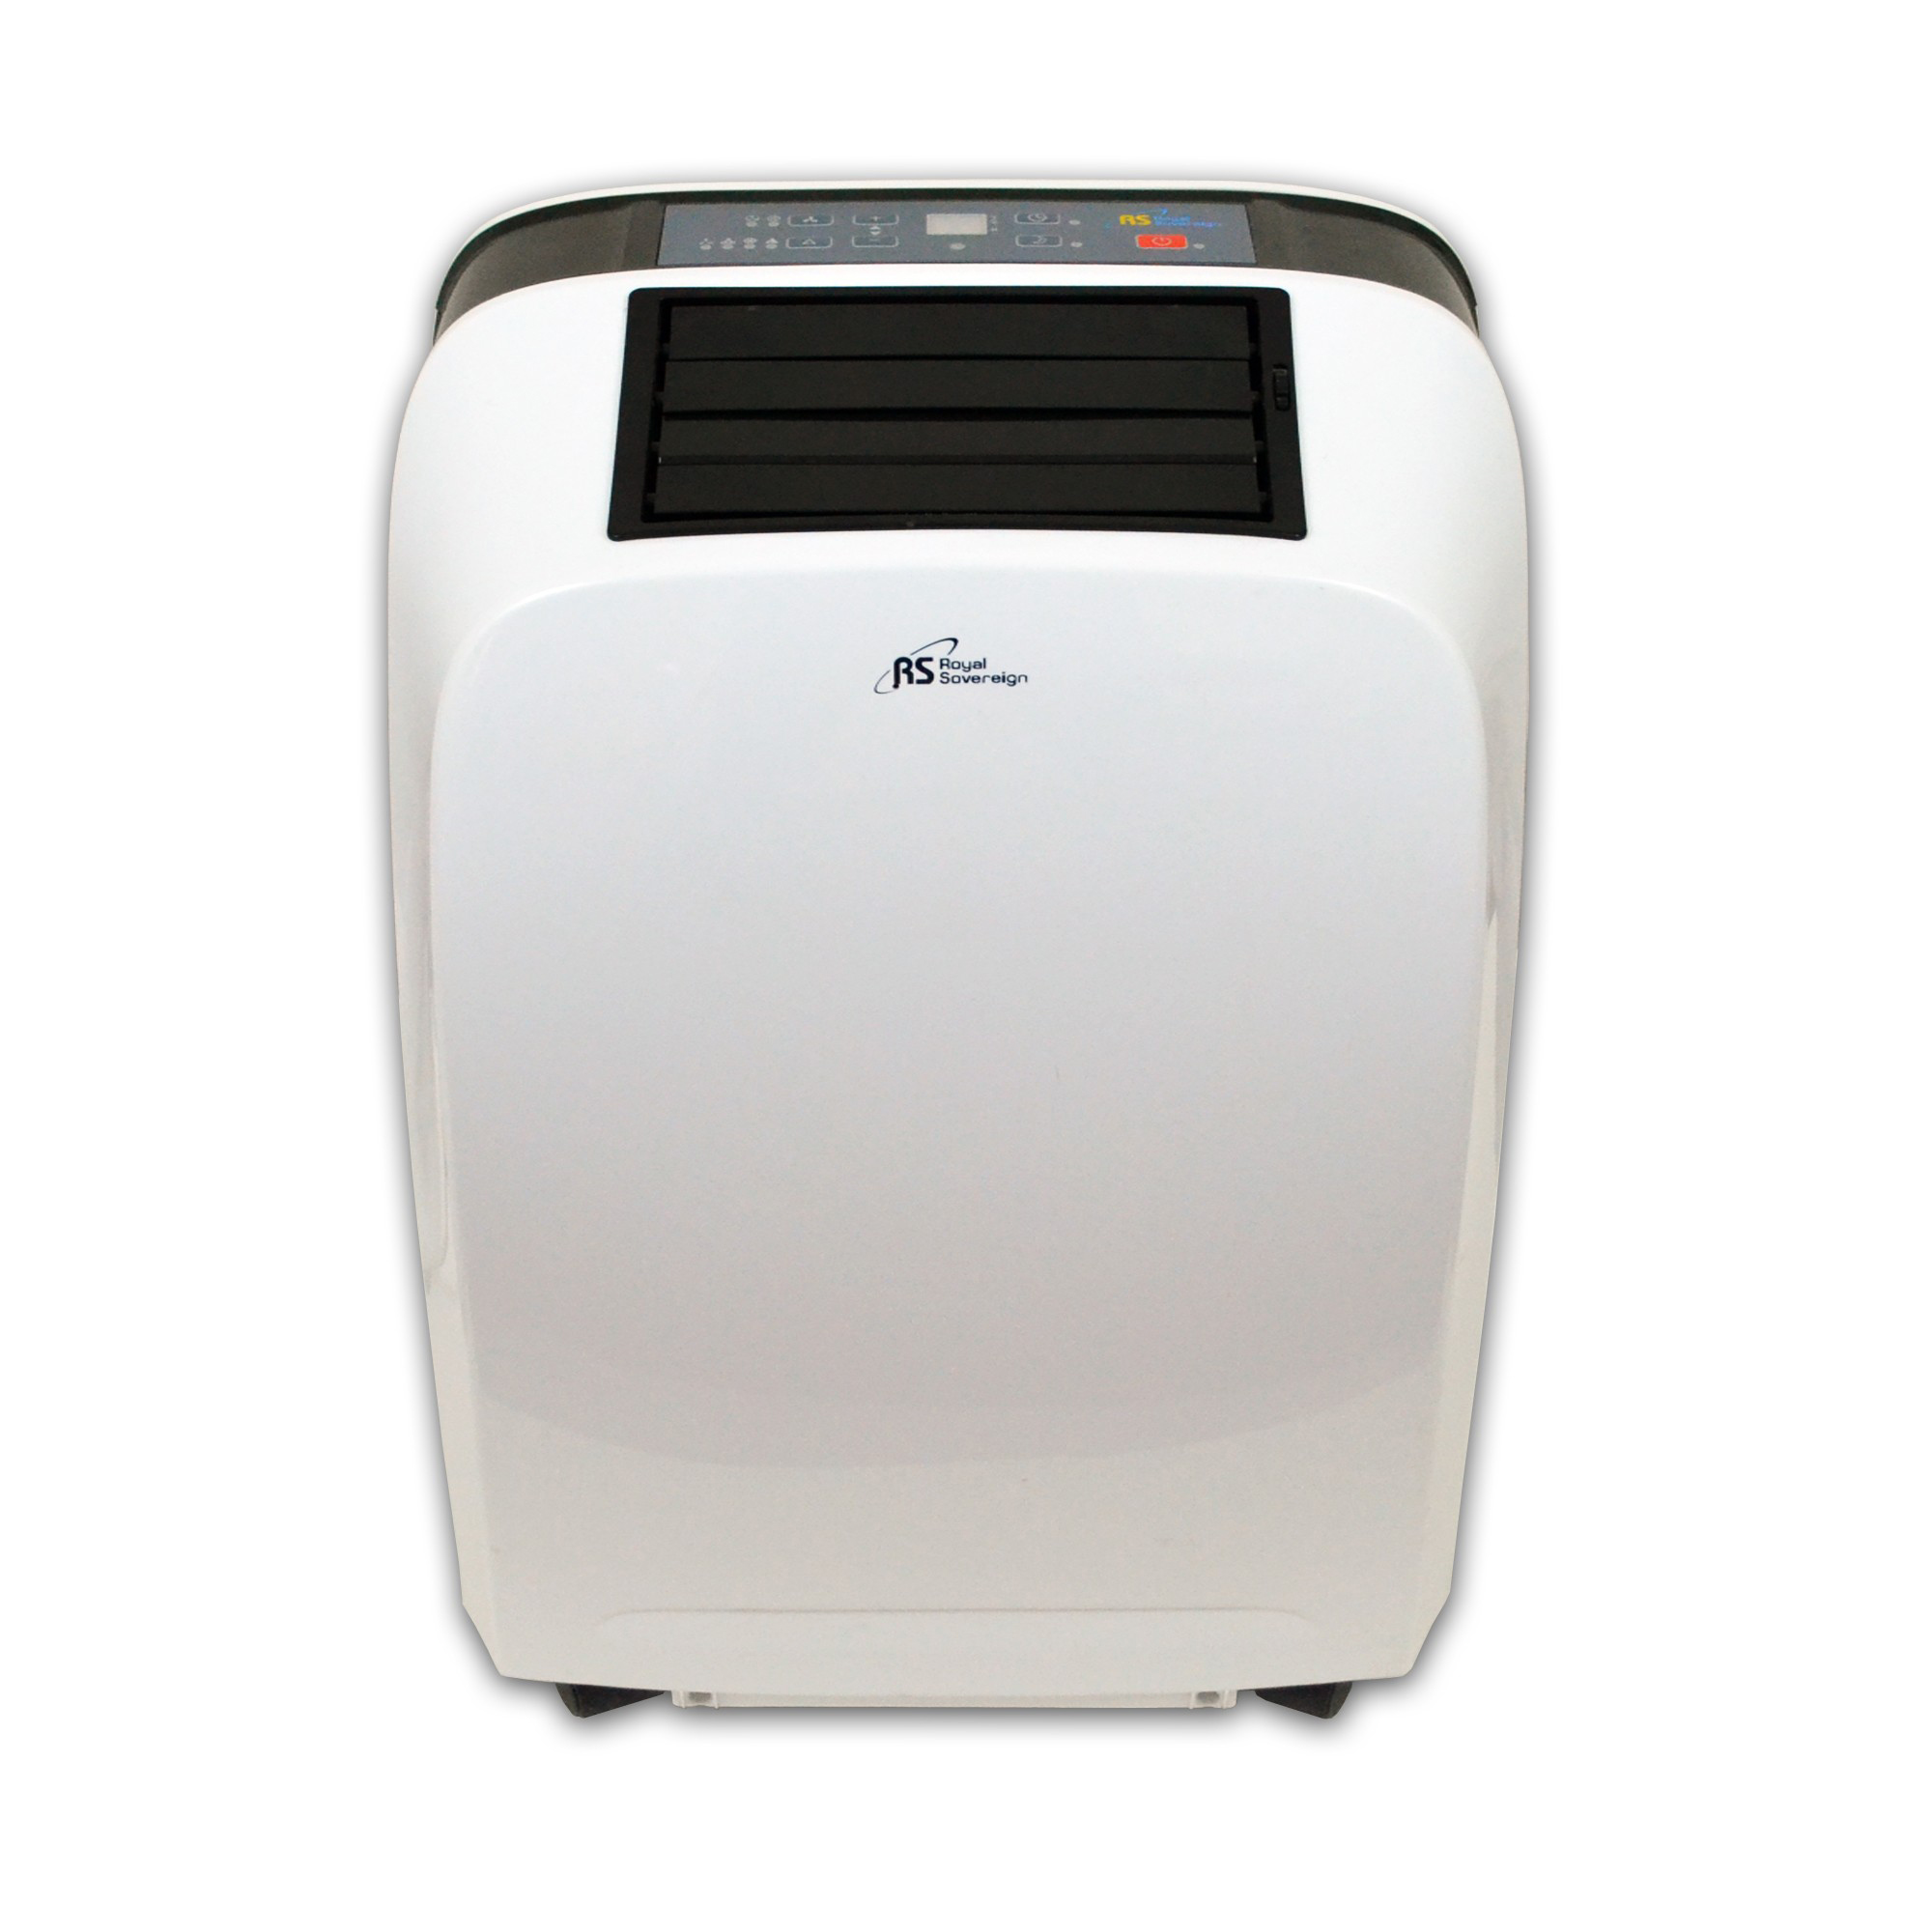 Haier portable air conditioner manual fresh casement for 12000 btu casement window air conditioner